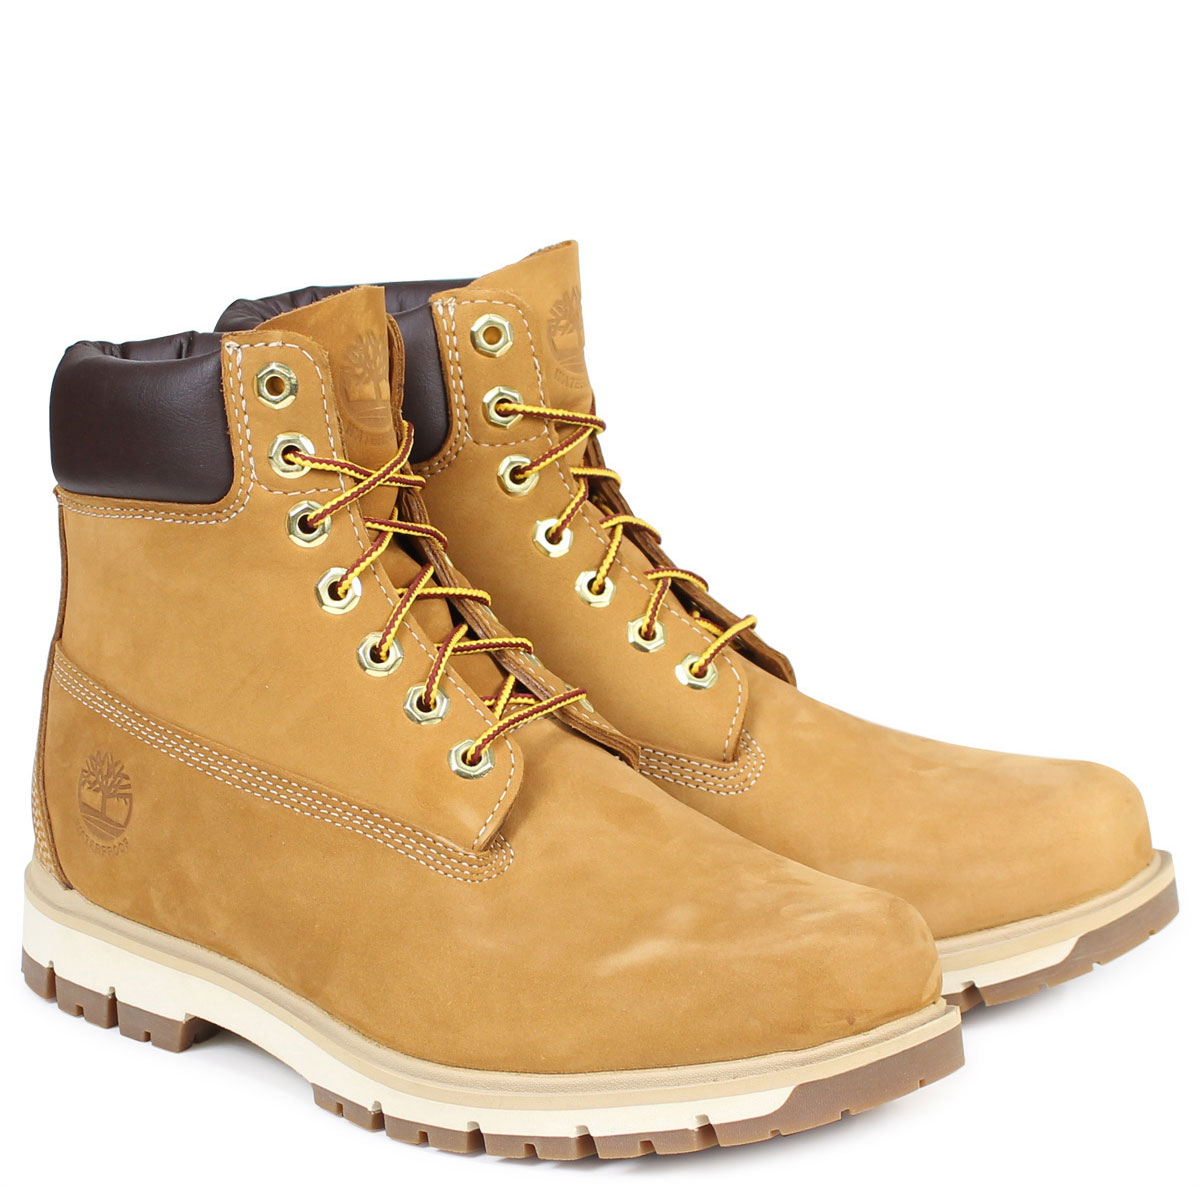 zamówienie zaoszczędź do 80% przemyślenia na temat 6 inches of Timberland RADFORD 6INCH PREMIUM BOOT Timberland boots men  A1JHF waterproof W Wise waterproofing brown [187]